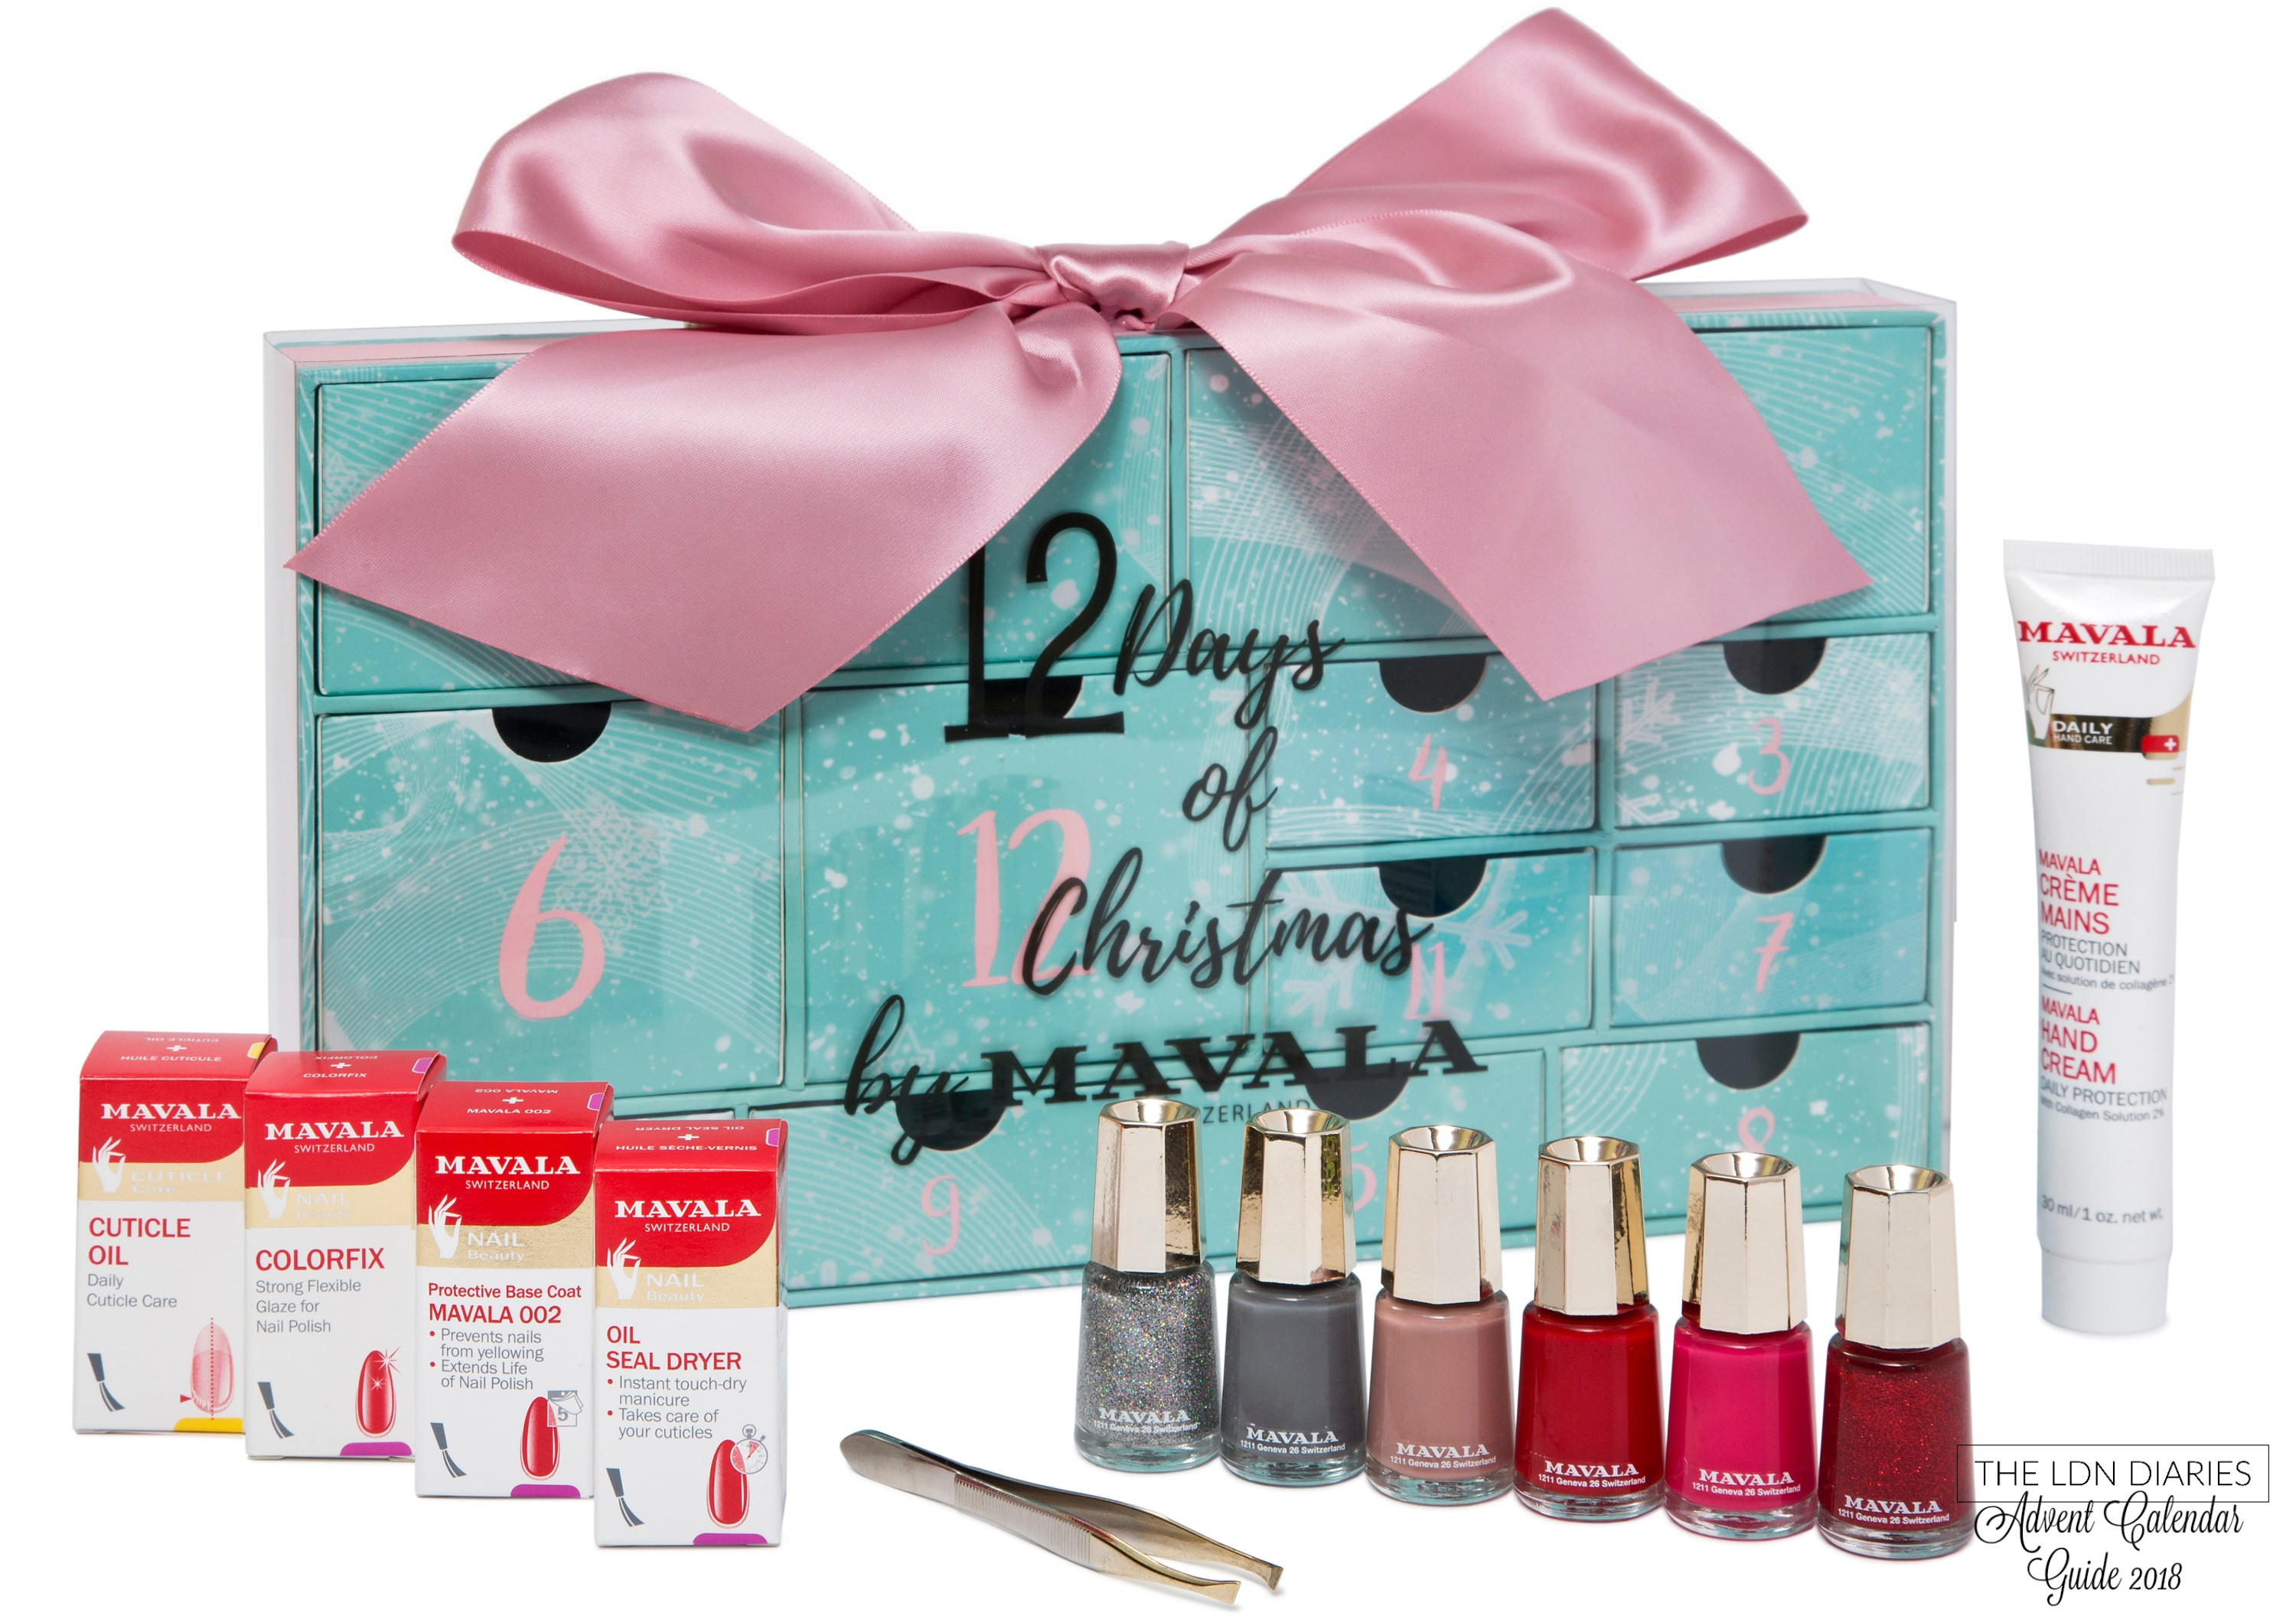 Mavala Beauty Advent Calendar 2018 - The LDN Diaries